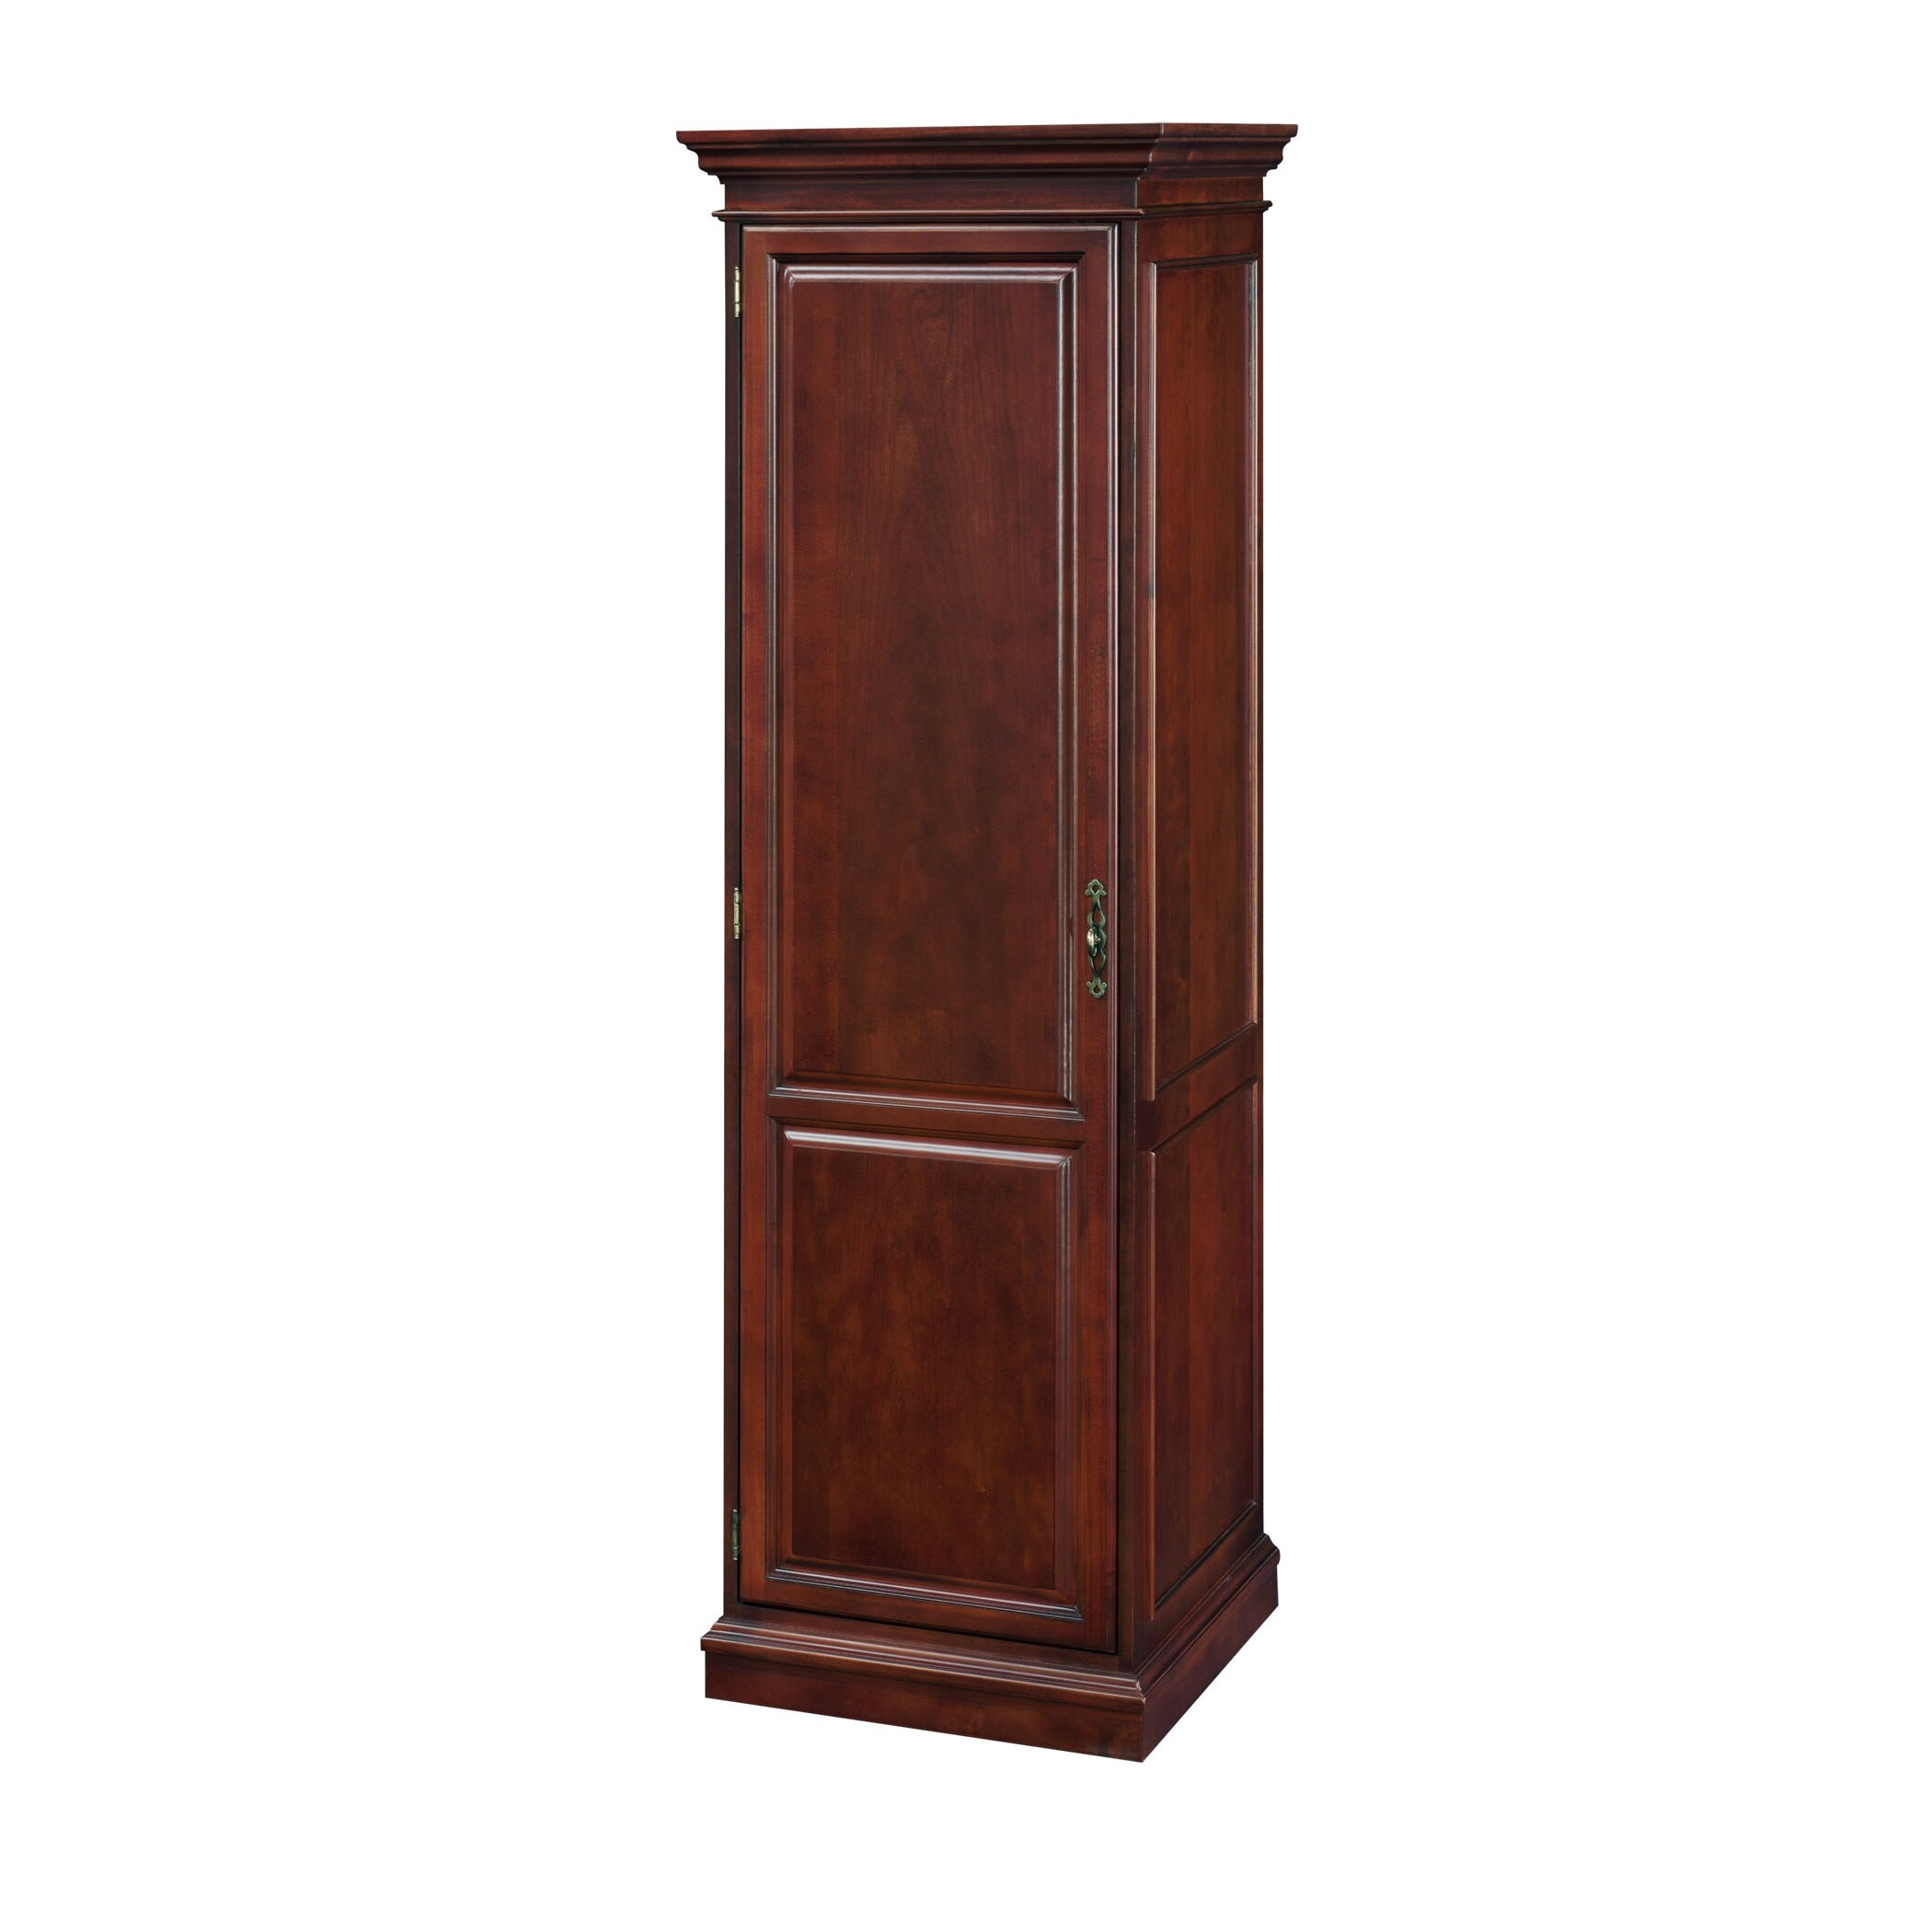 Darby home co prestbury armoire for 1 door storage cabinet